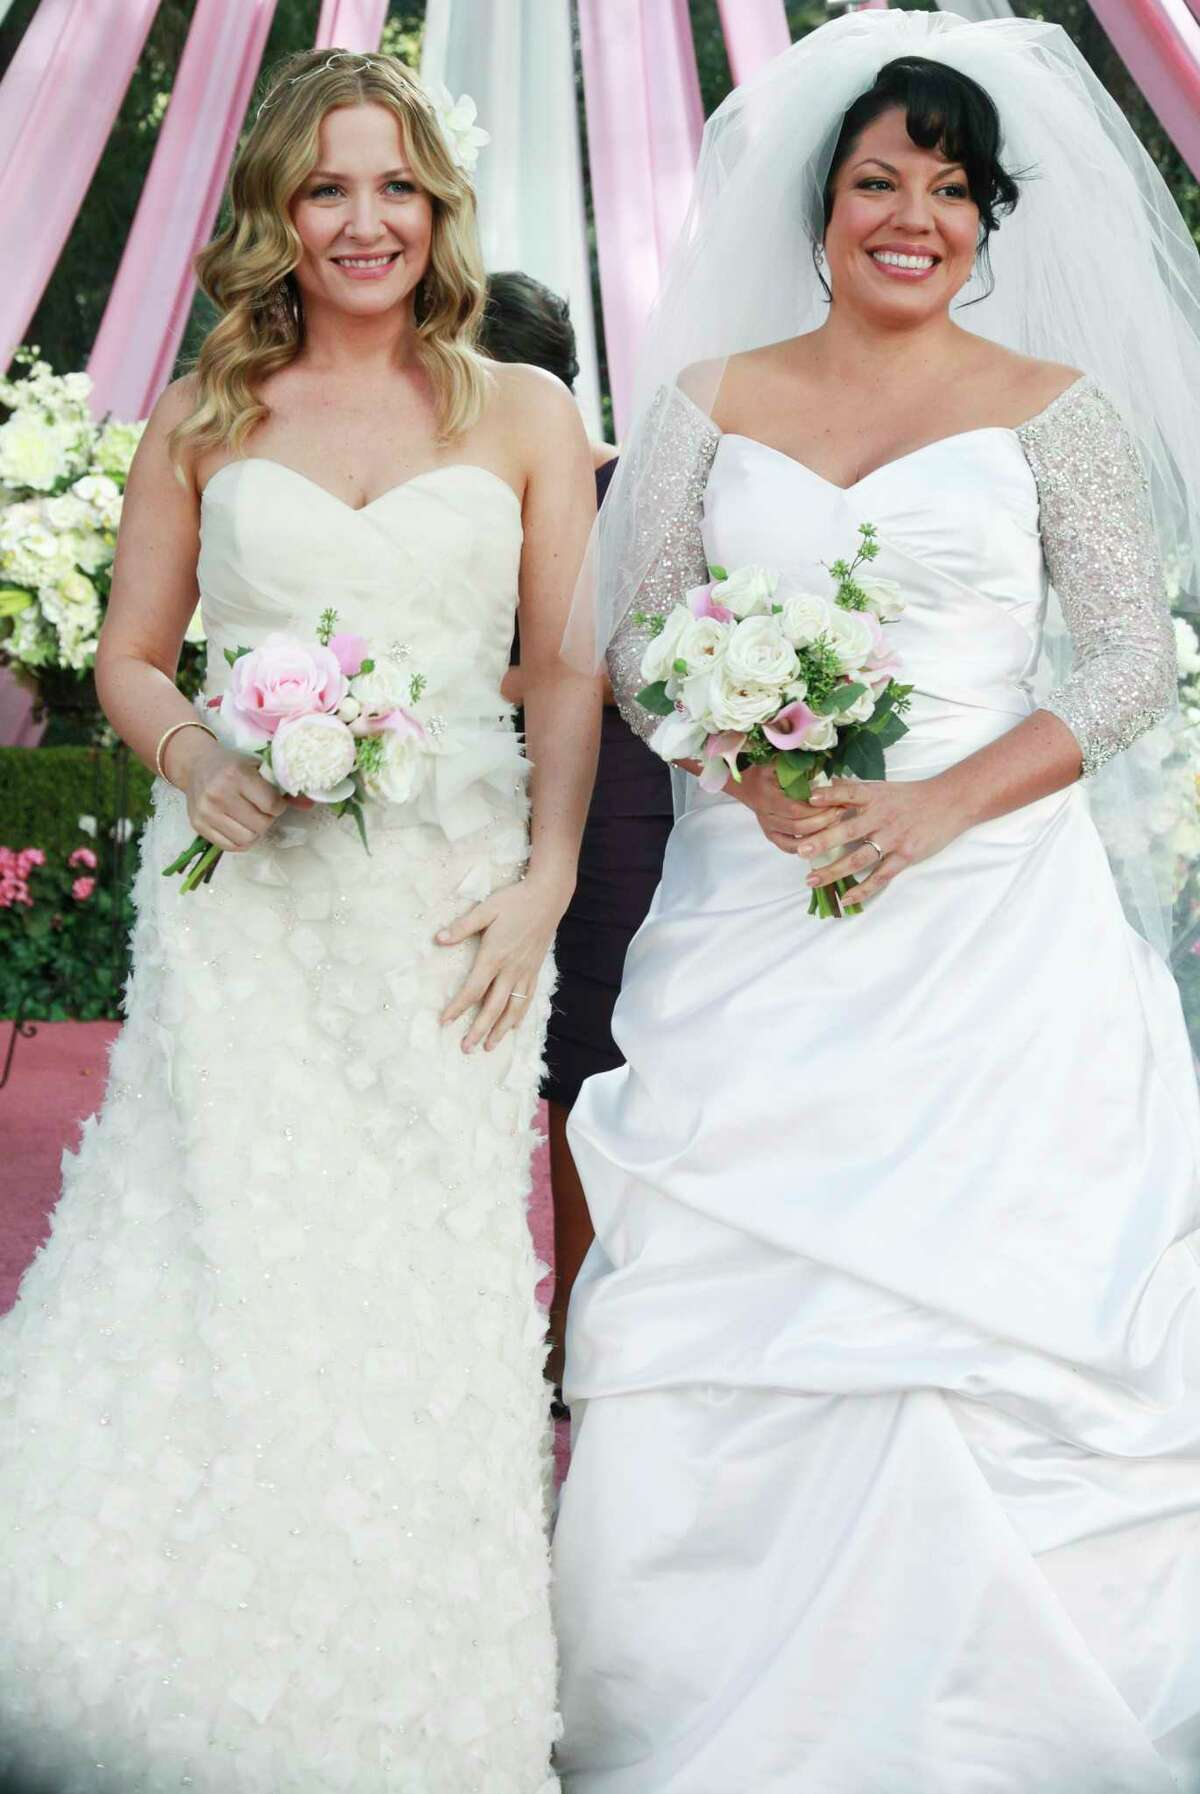 Jessica Capshaw, left, as Arizona and Sara Ramirez as Callie are married during an episode of